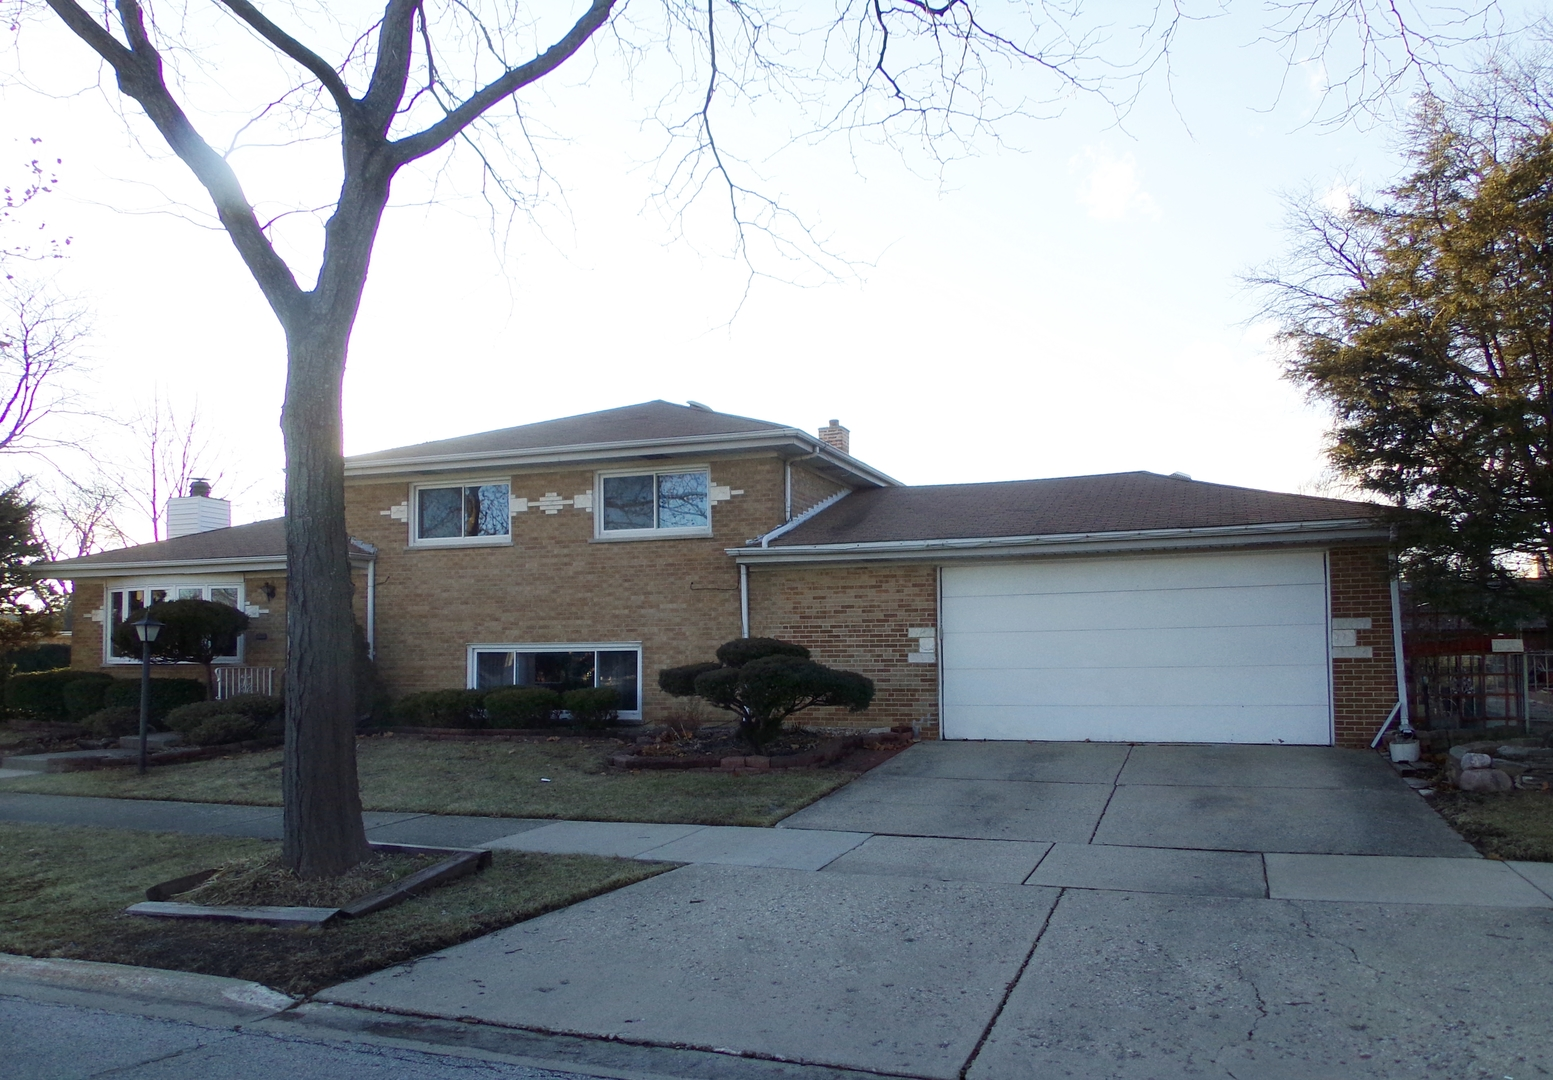 Suffield Street, MORTON GROVE, IL 60053